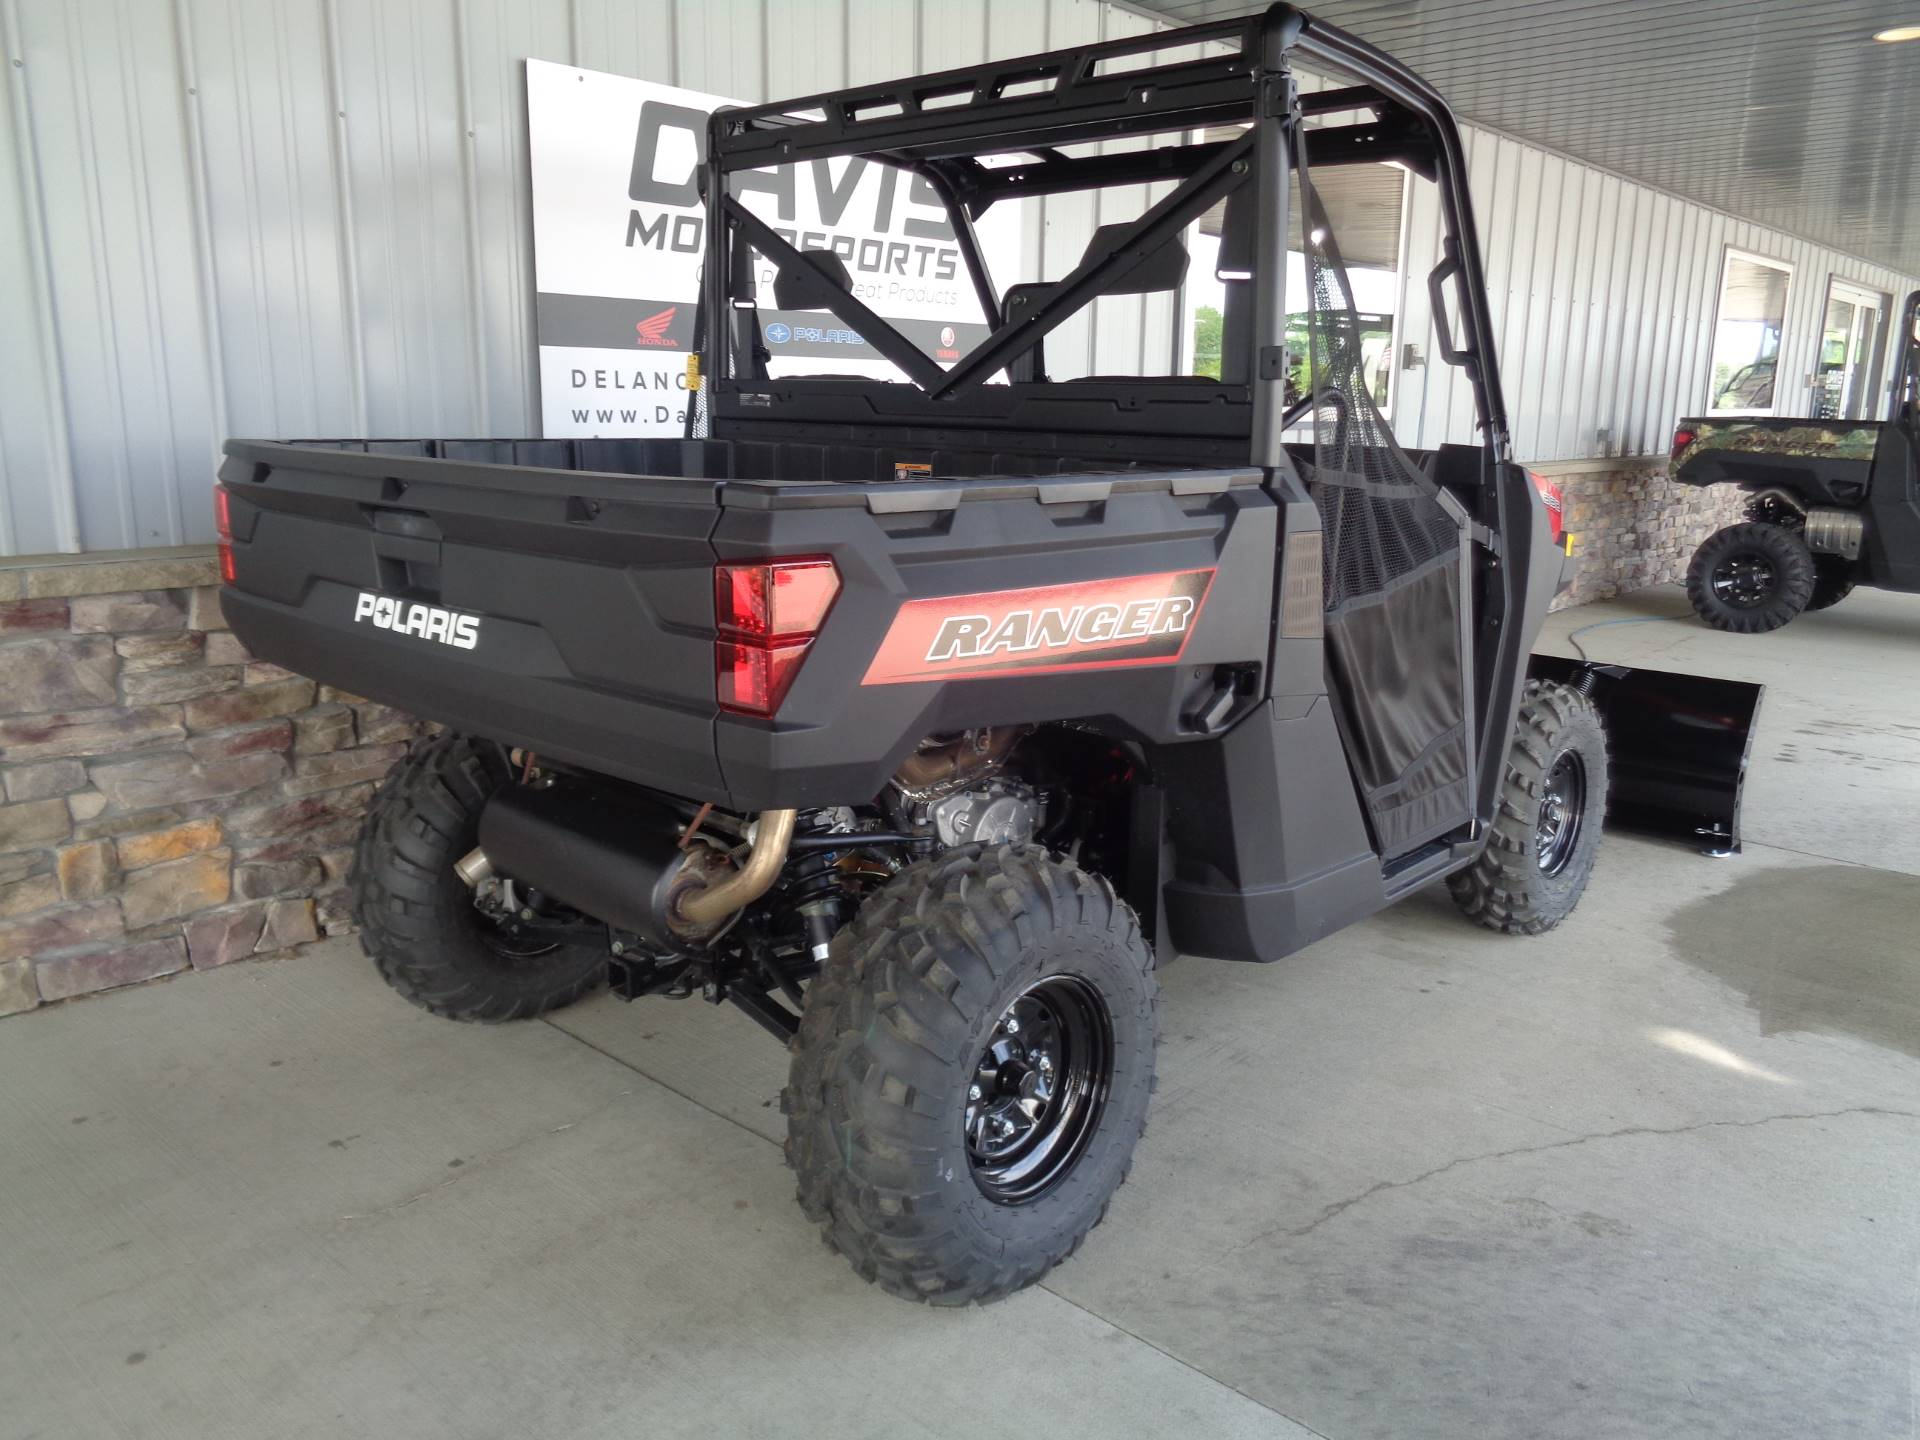 2020 Polaris Ranger 1000 EPS in Delano, Minnesota - Photo 5